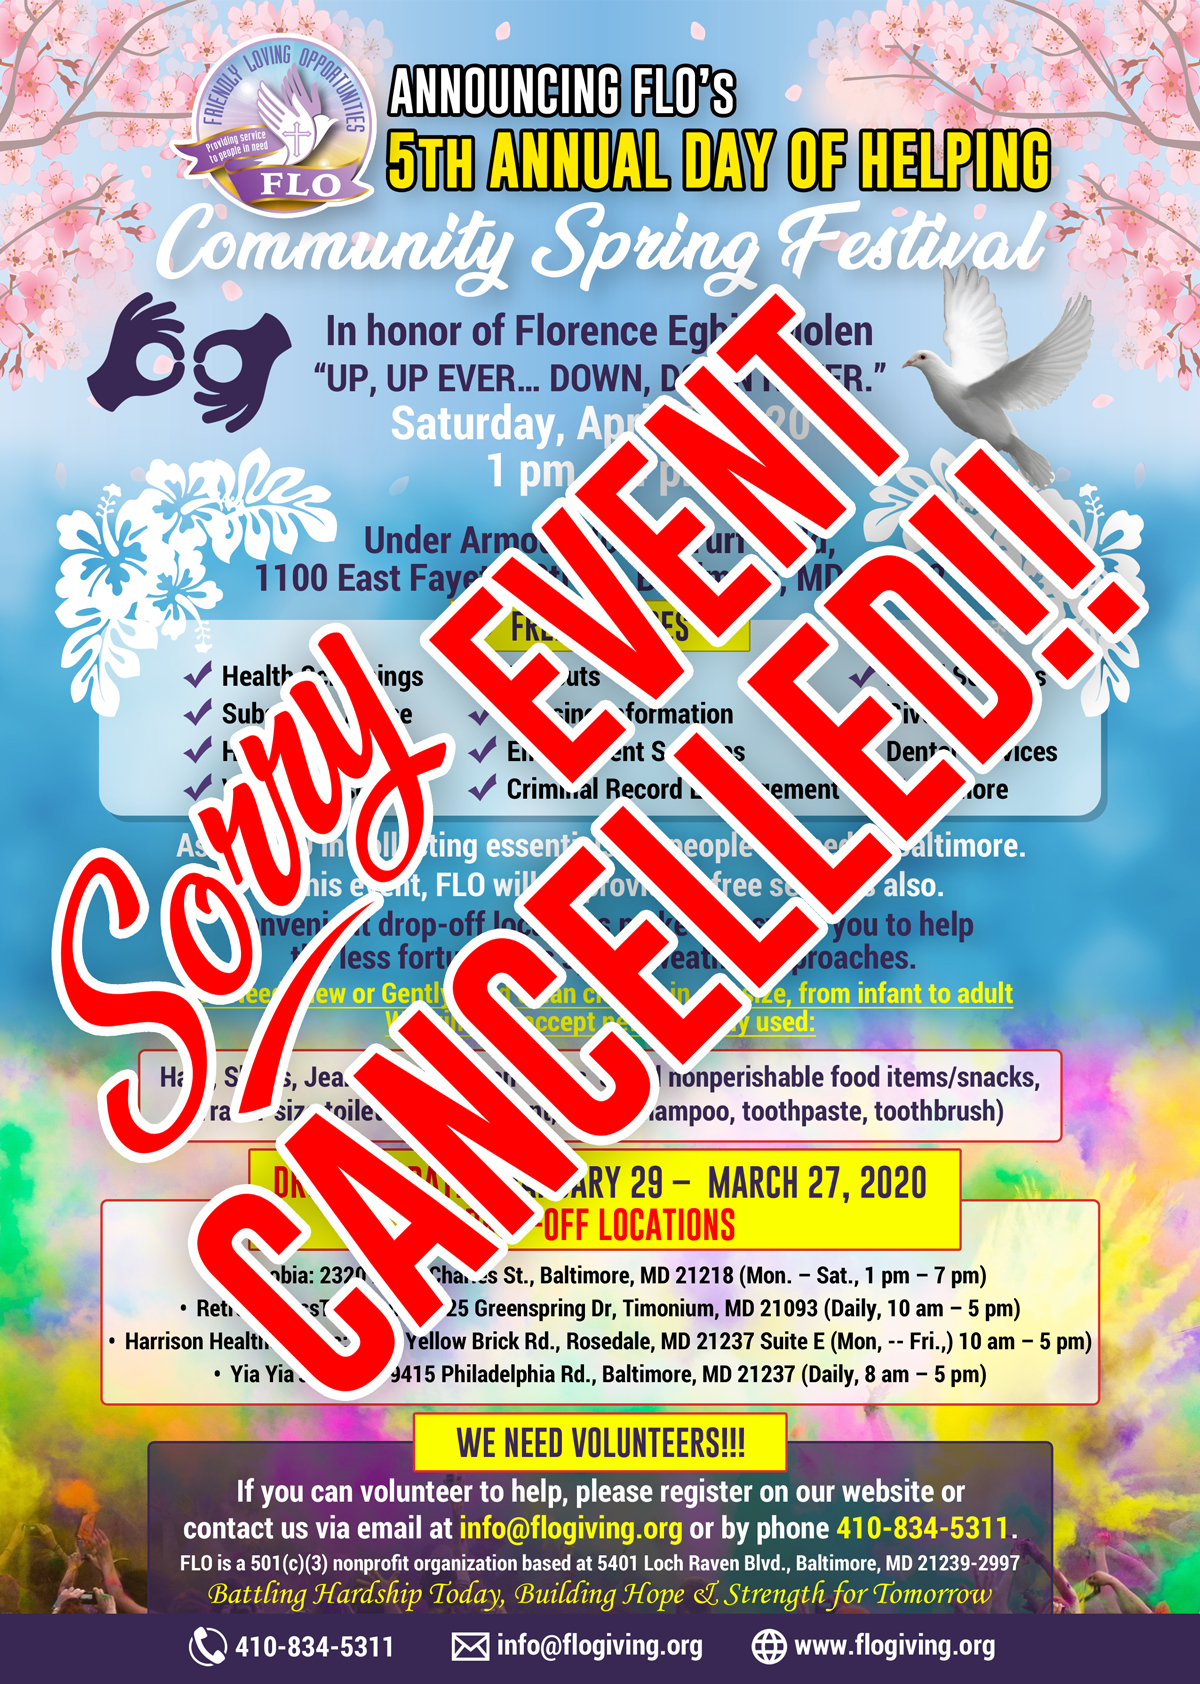 FLOs-5th-Day-of-Helping-Flyer-Event-Cancelled-1